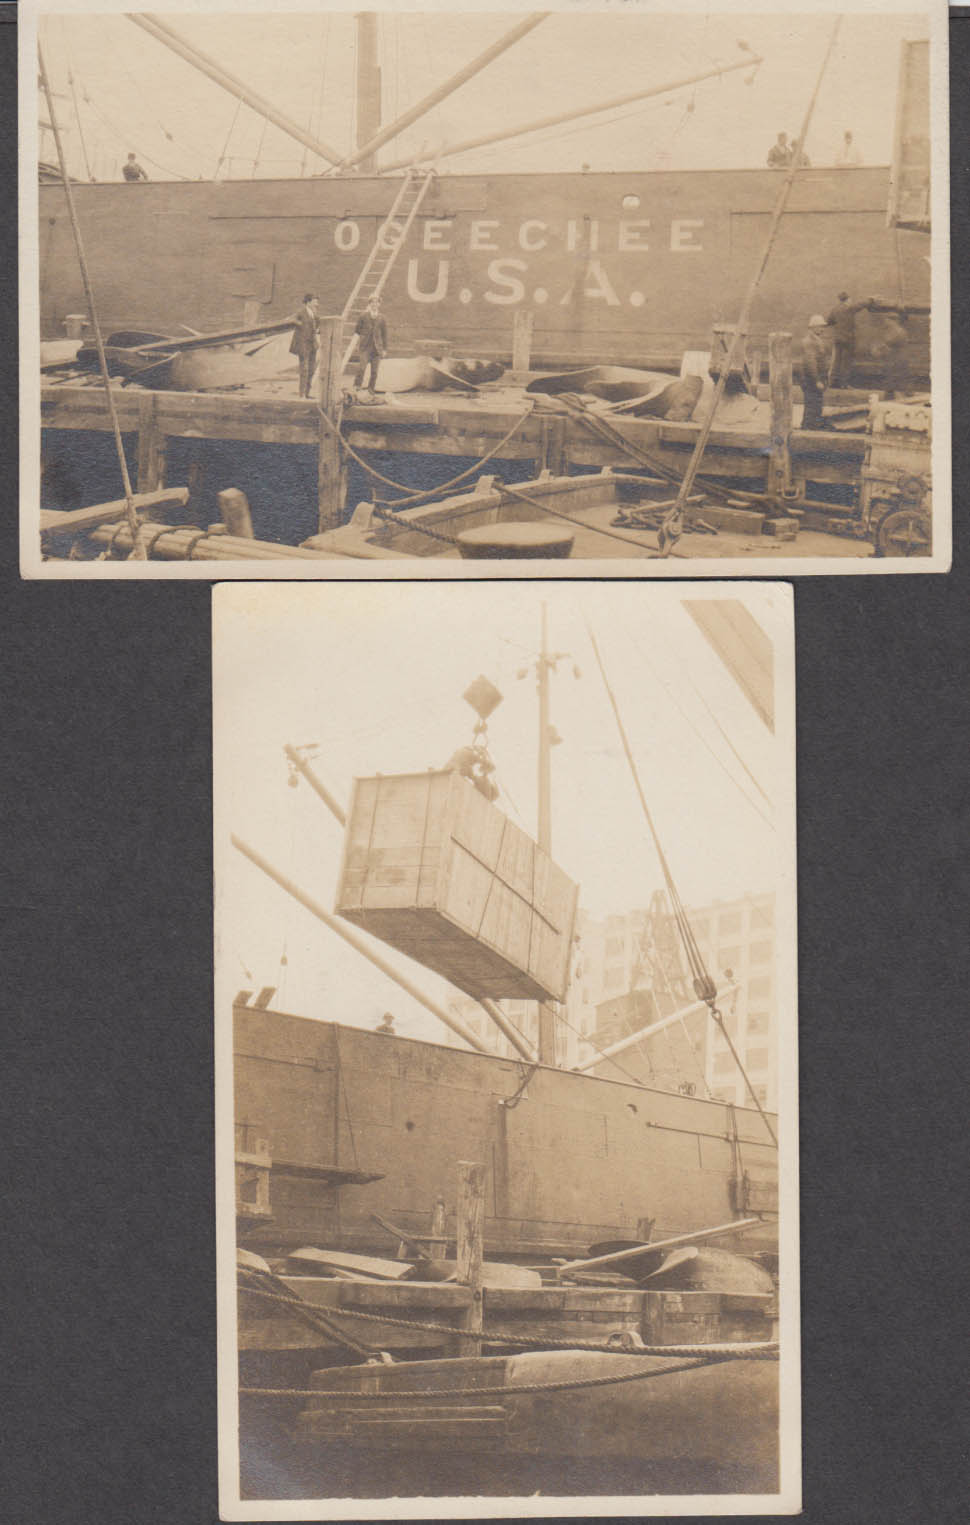 S S Ogeechee loading at dockside two RPPC 1915 commandeered by British